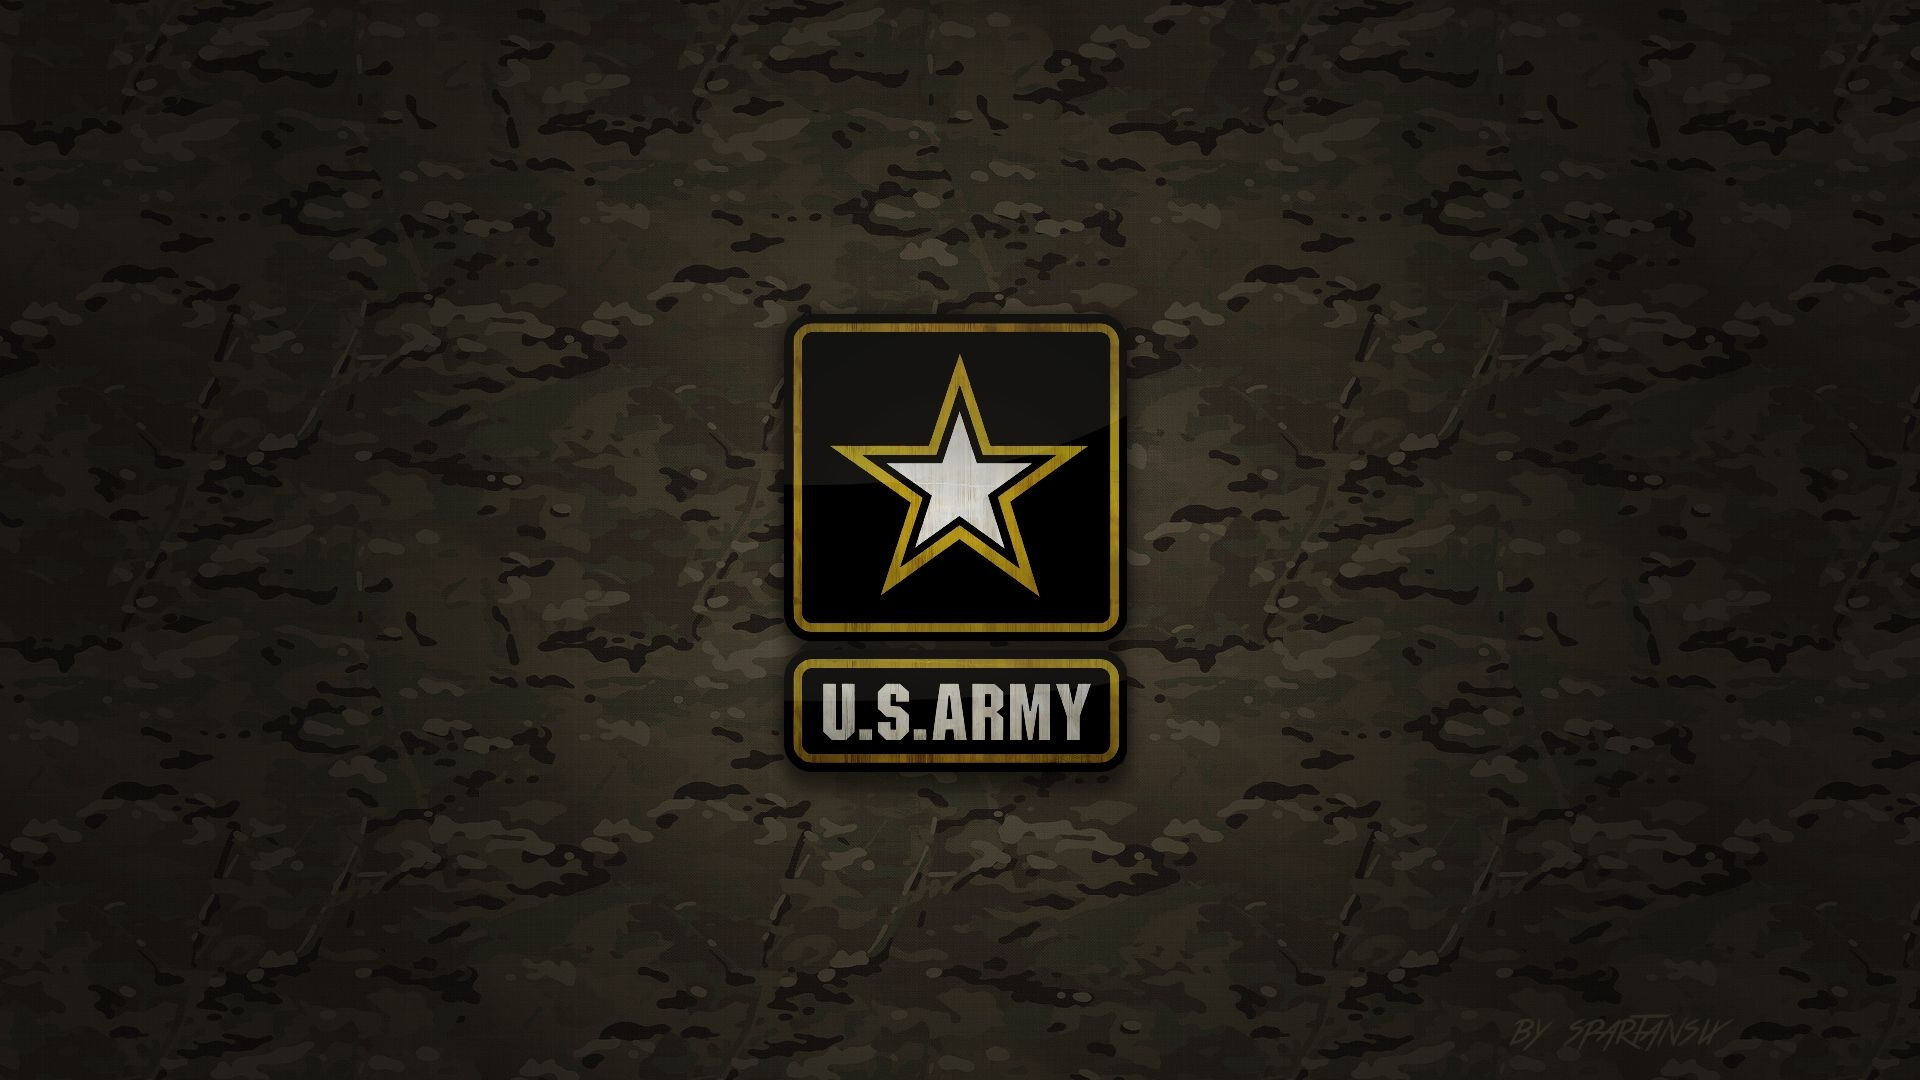 hd army wallpapers and background images for download 1920×1080 army